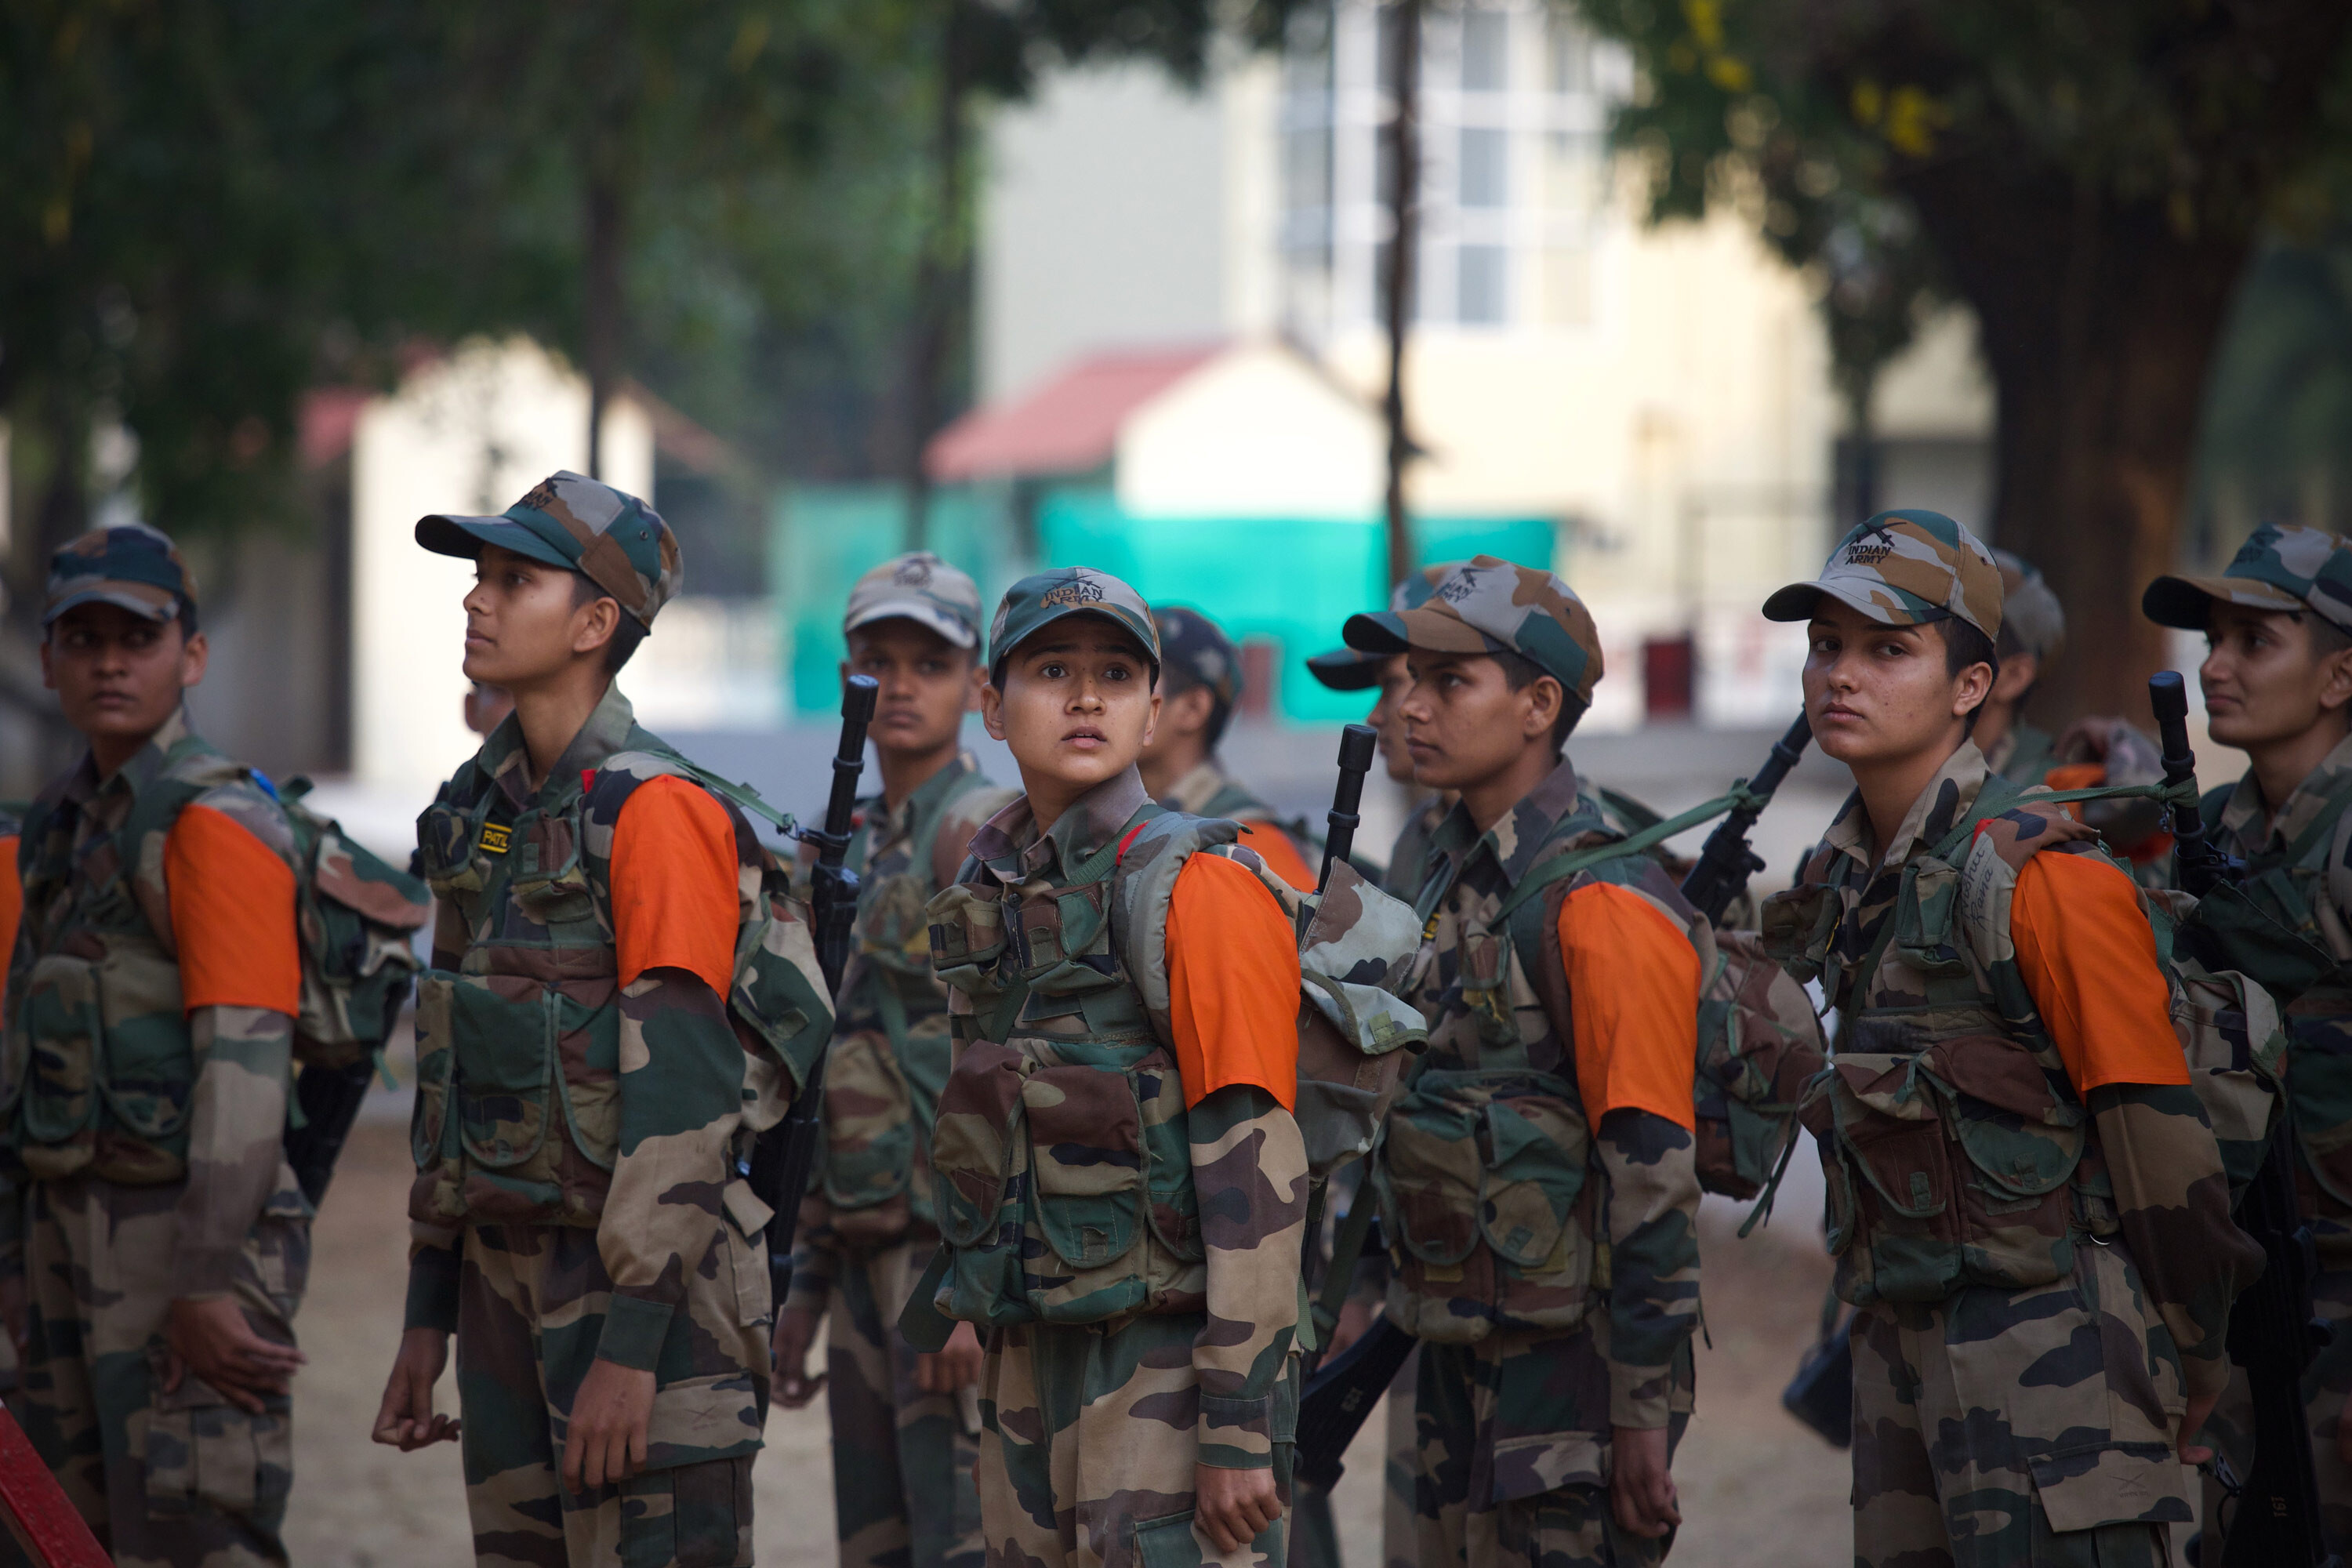 India's top court clears way for women to attend elite military academy